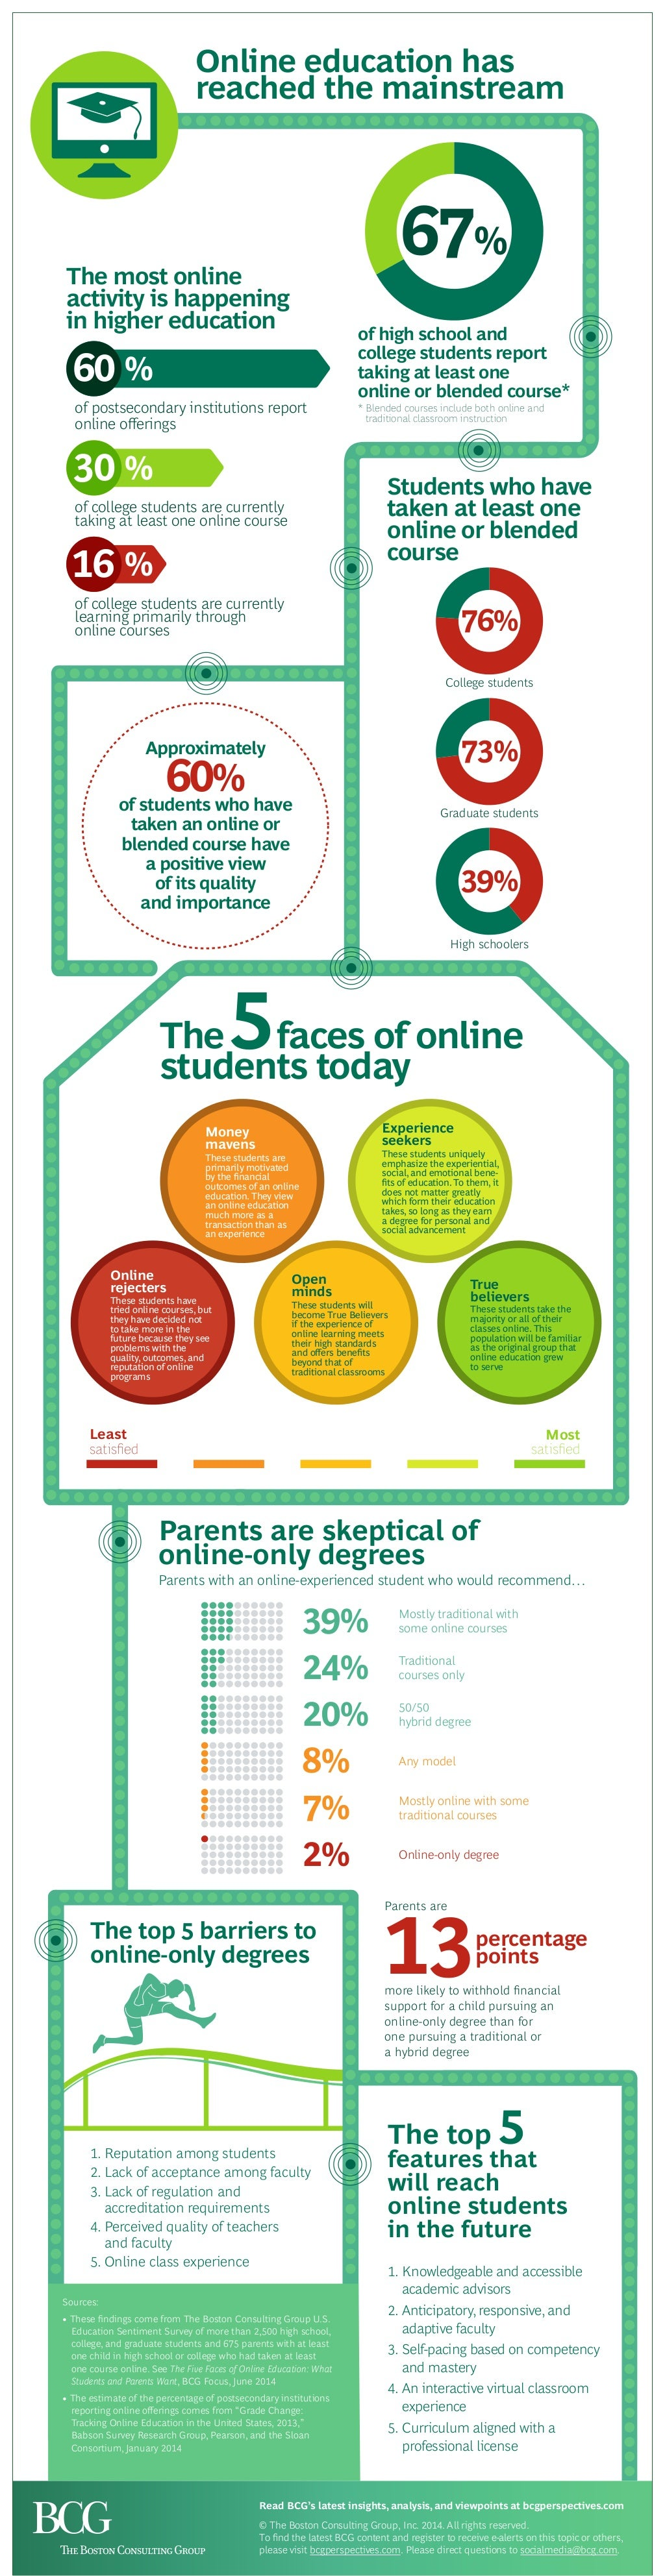 Online Education Has Reached the Mainstream